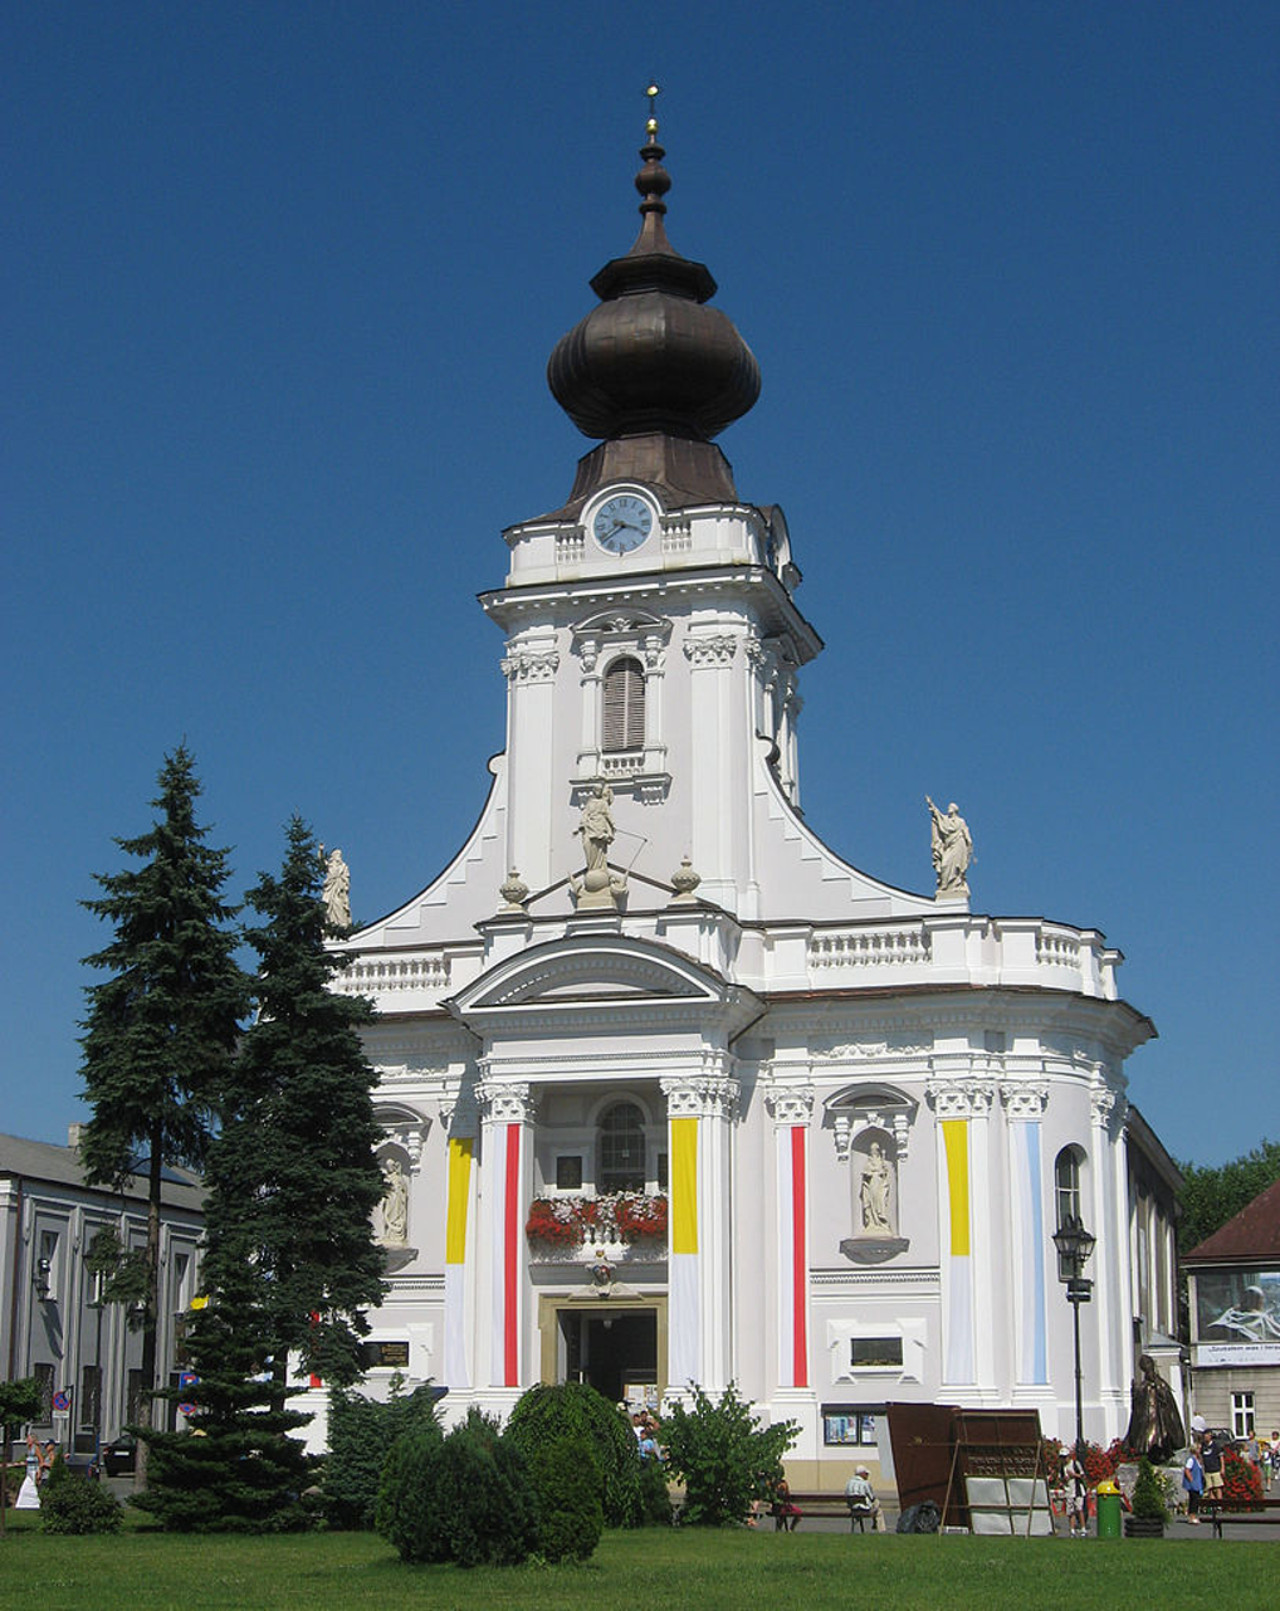 Wadowice, Basilica of the Presentation of the Blessed Virgin Mary, in Polonia